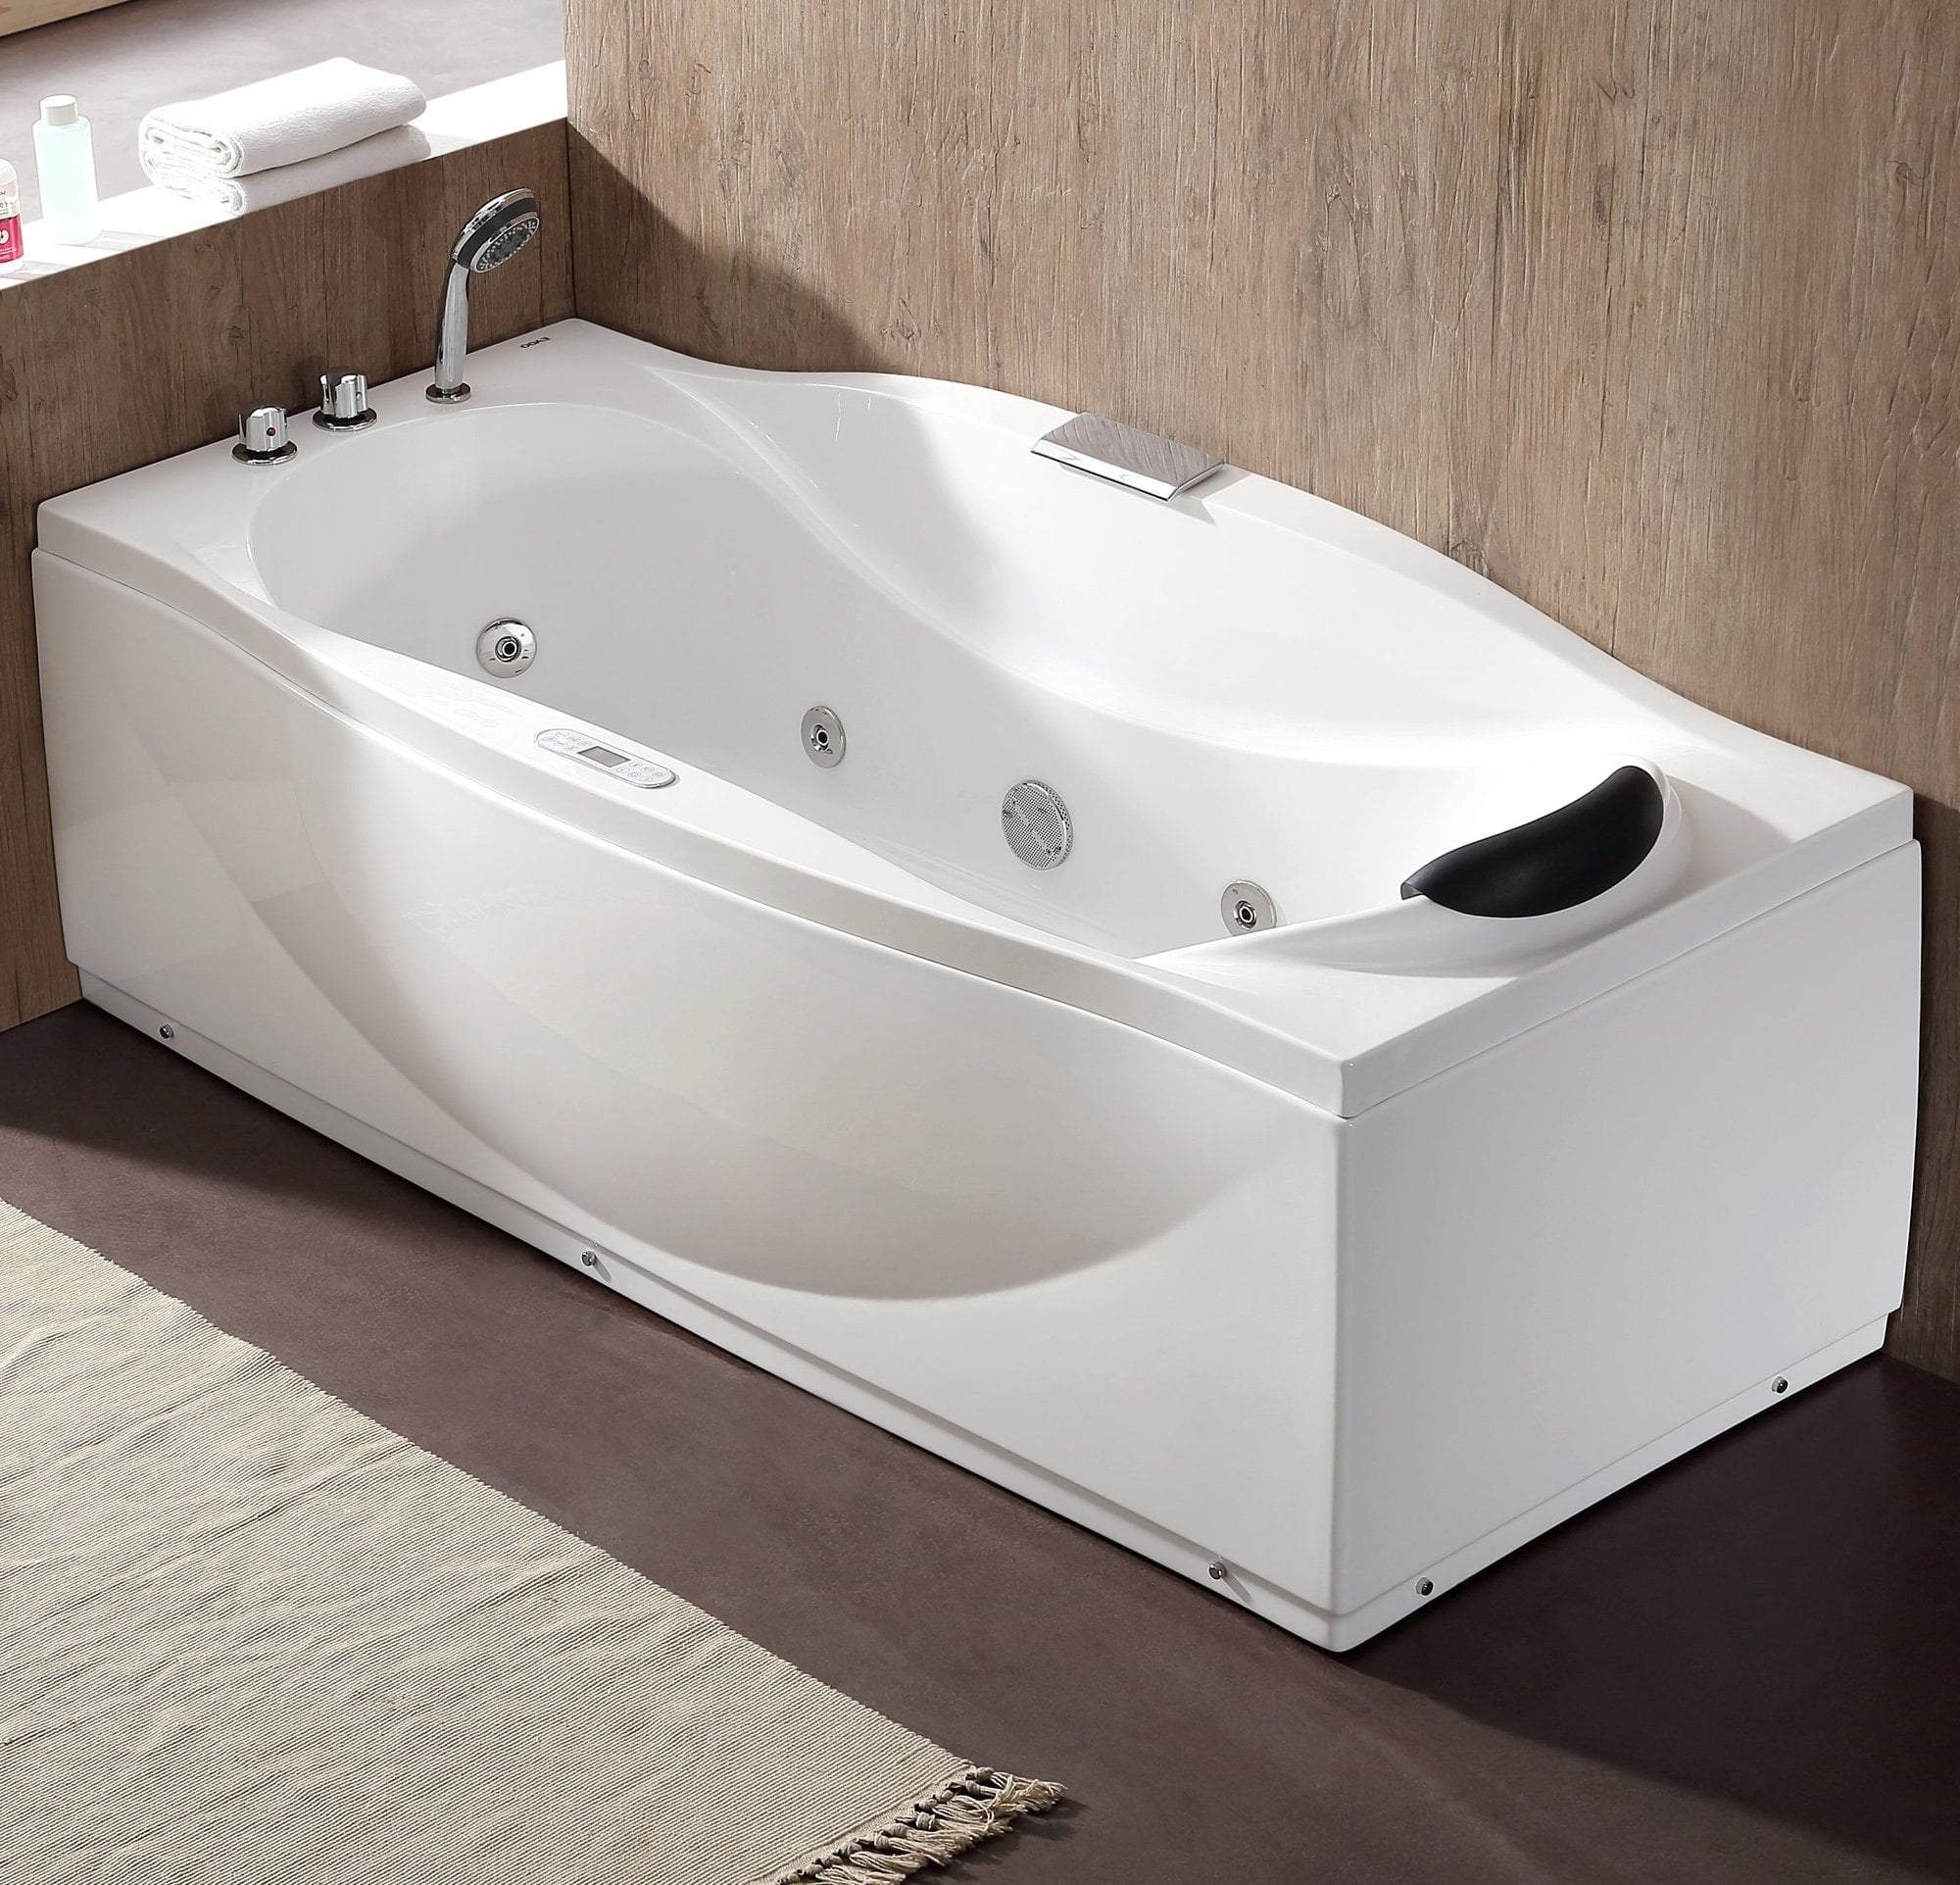 6 ft Left Drain Acrylic White Whirlpool Bathtub w Fixtures